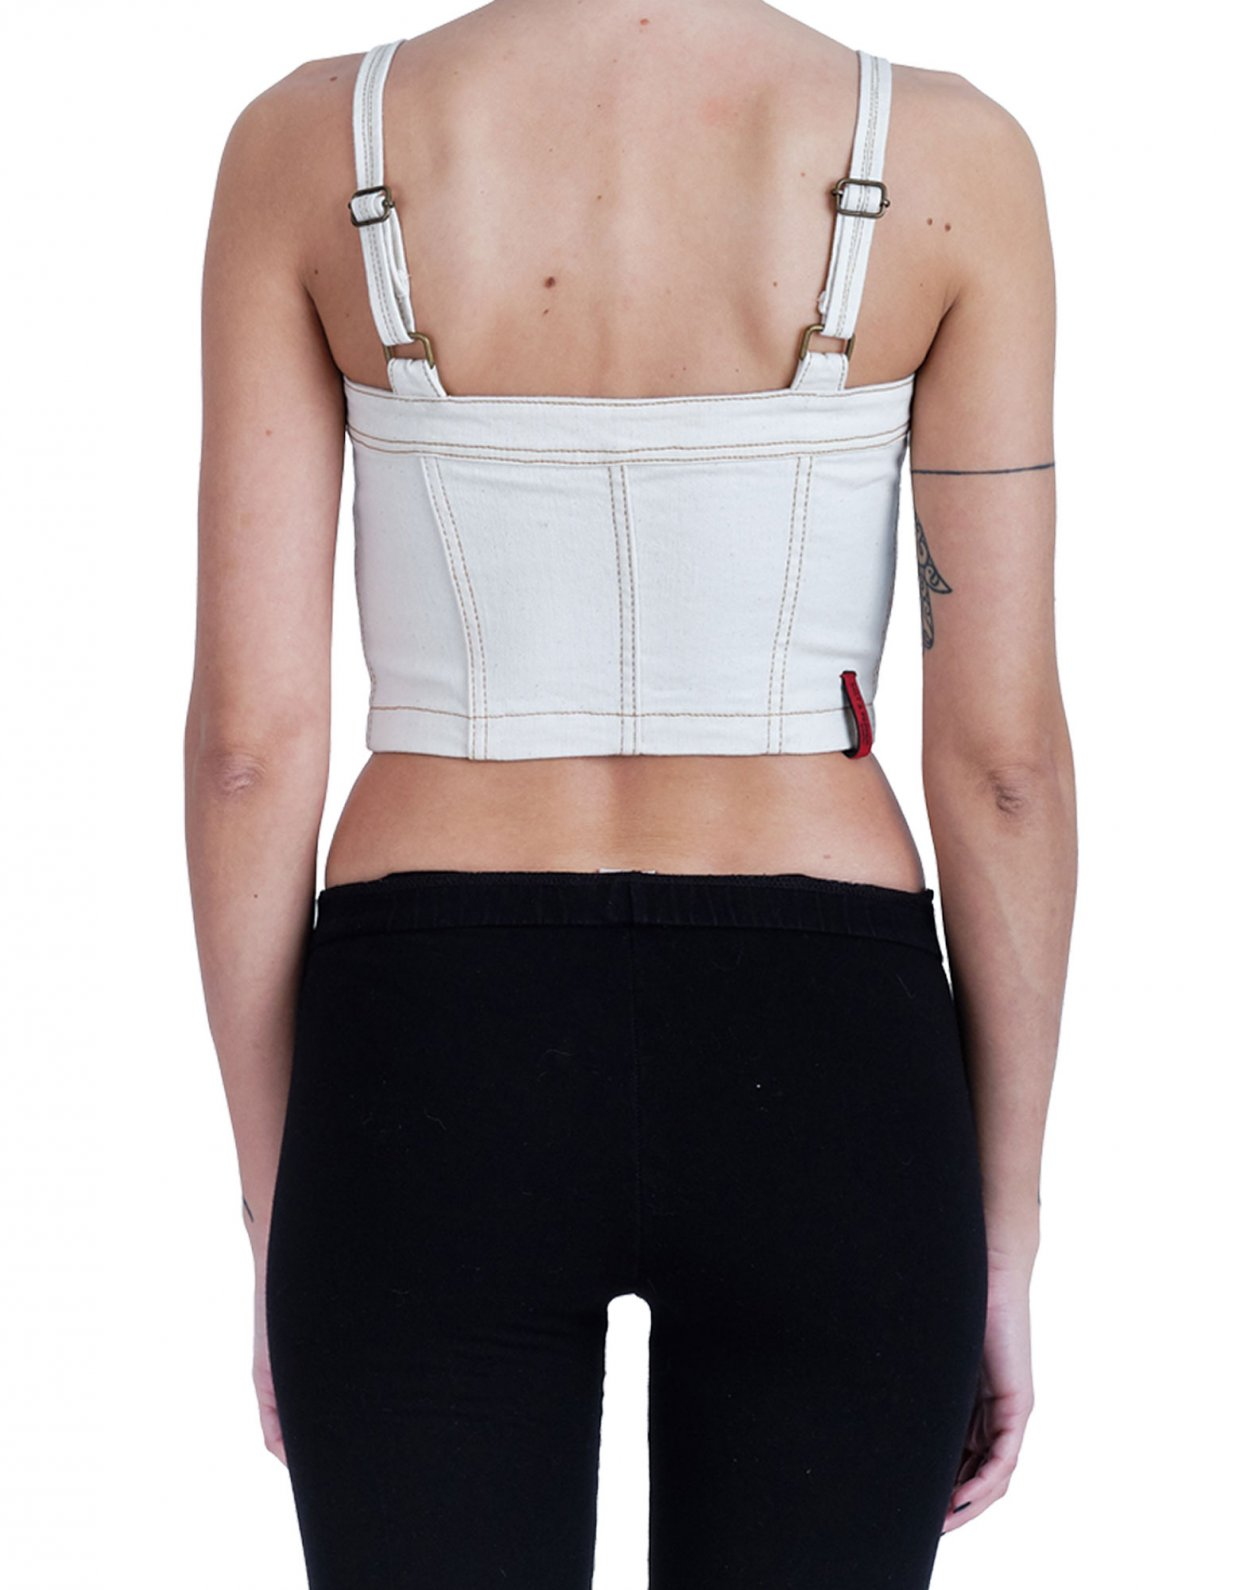 Salt & Pepper Matina cream bustier